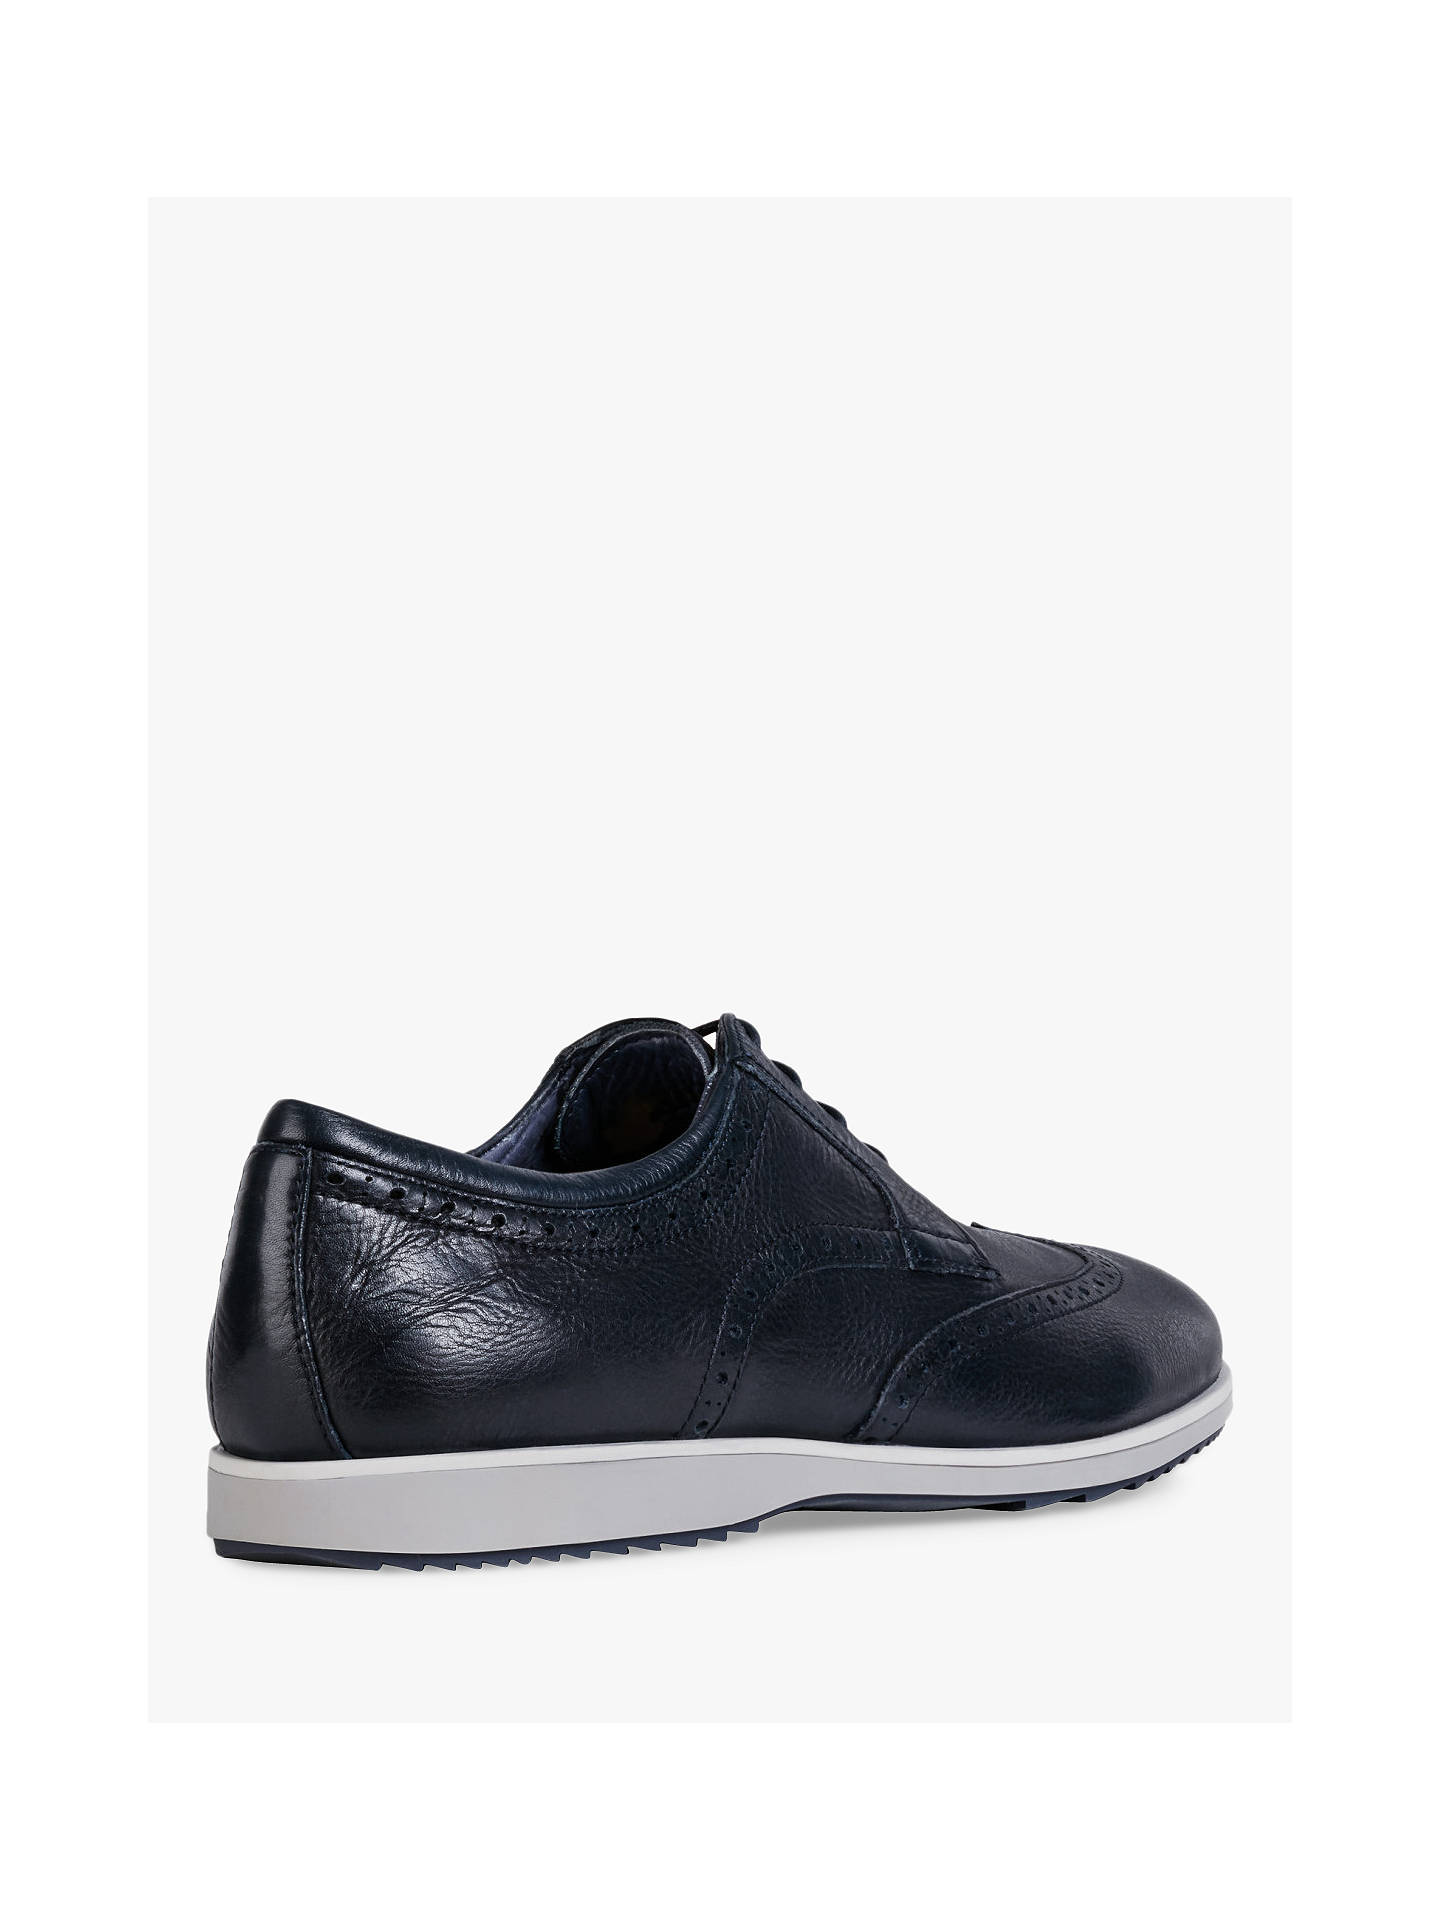 Geox Blainey Leather Brogues at John Lewis & Partners